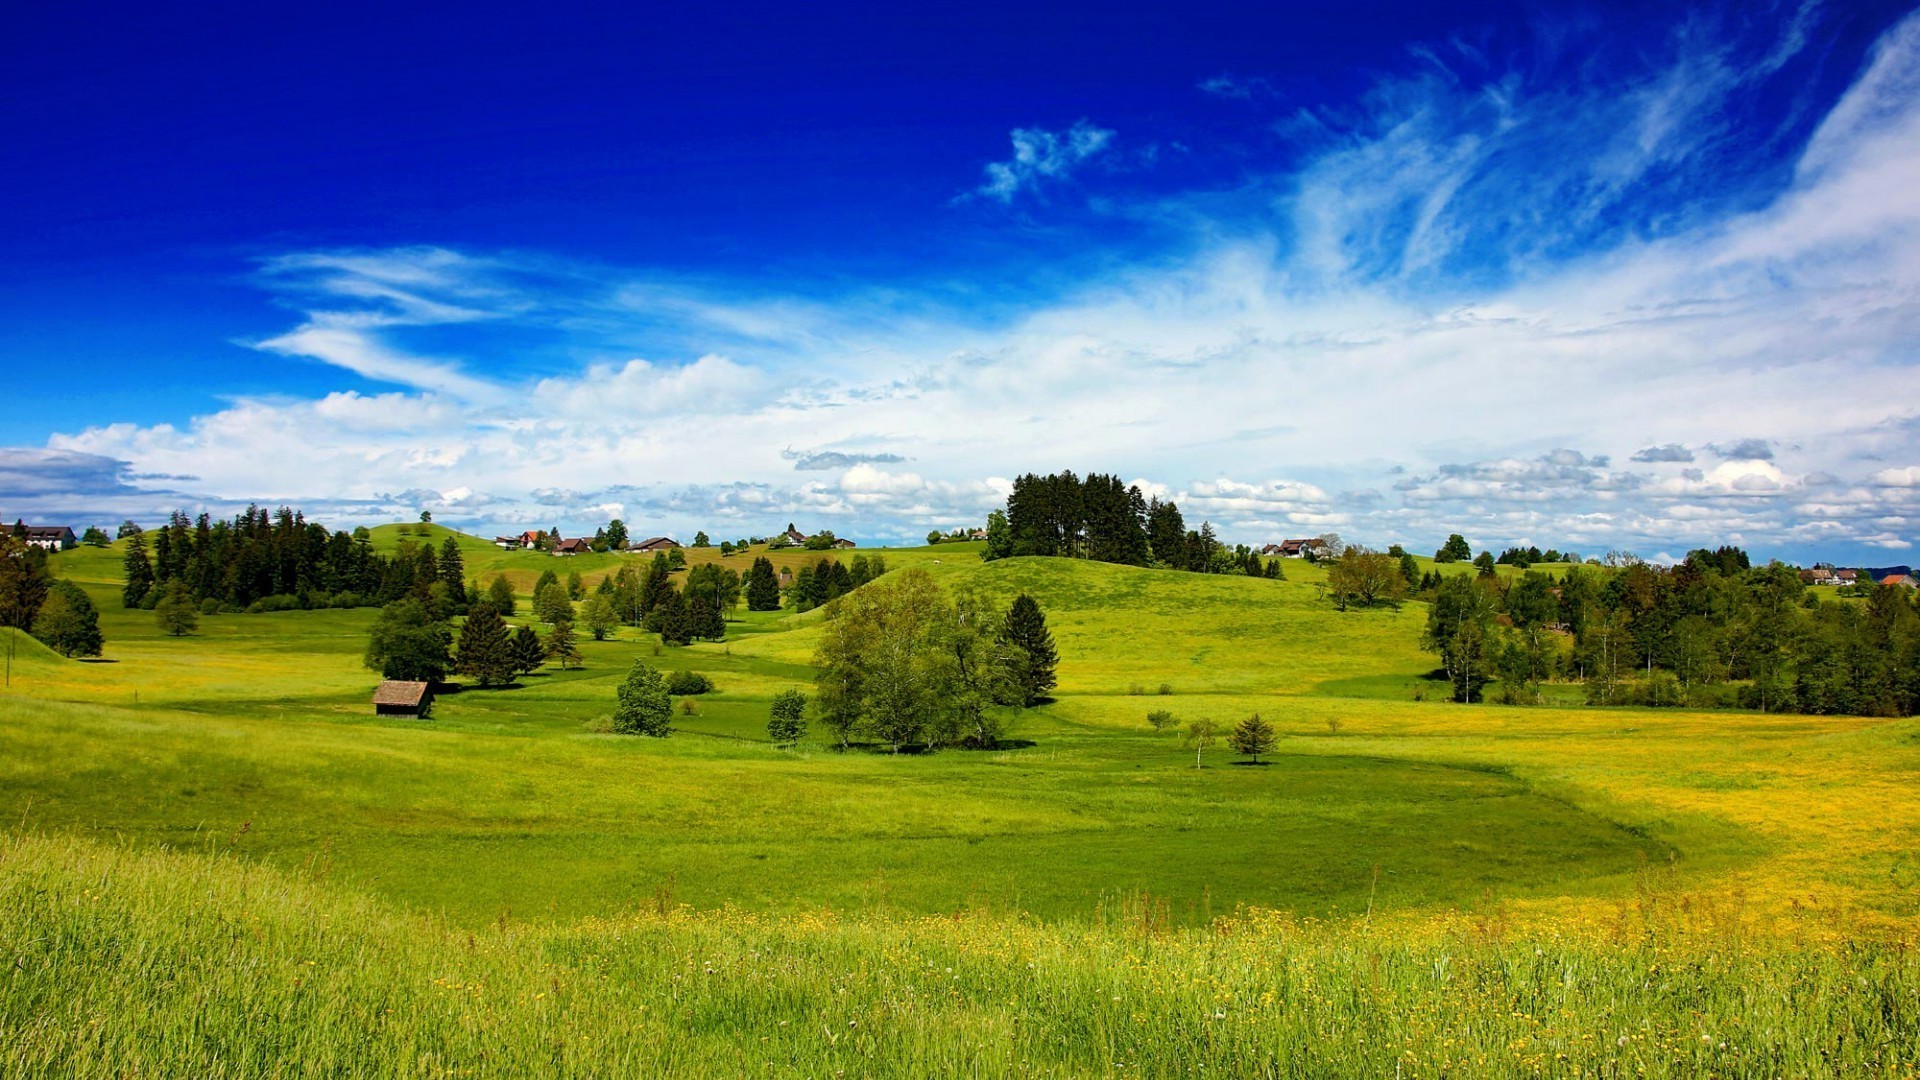 fields meadows and valleys landscape nature hayfield field agriculture tree grass countryside rural sky summer pasture outdoors farm country hill grassland scenic idyllic